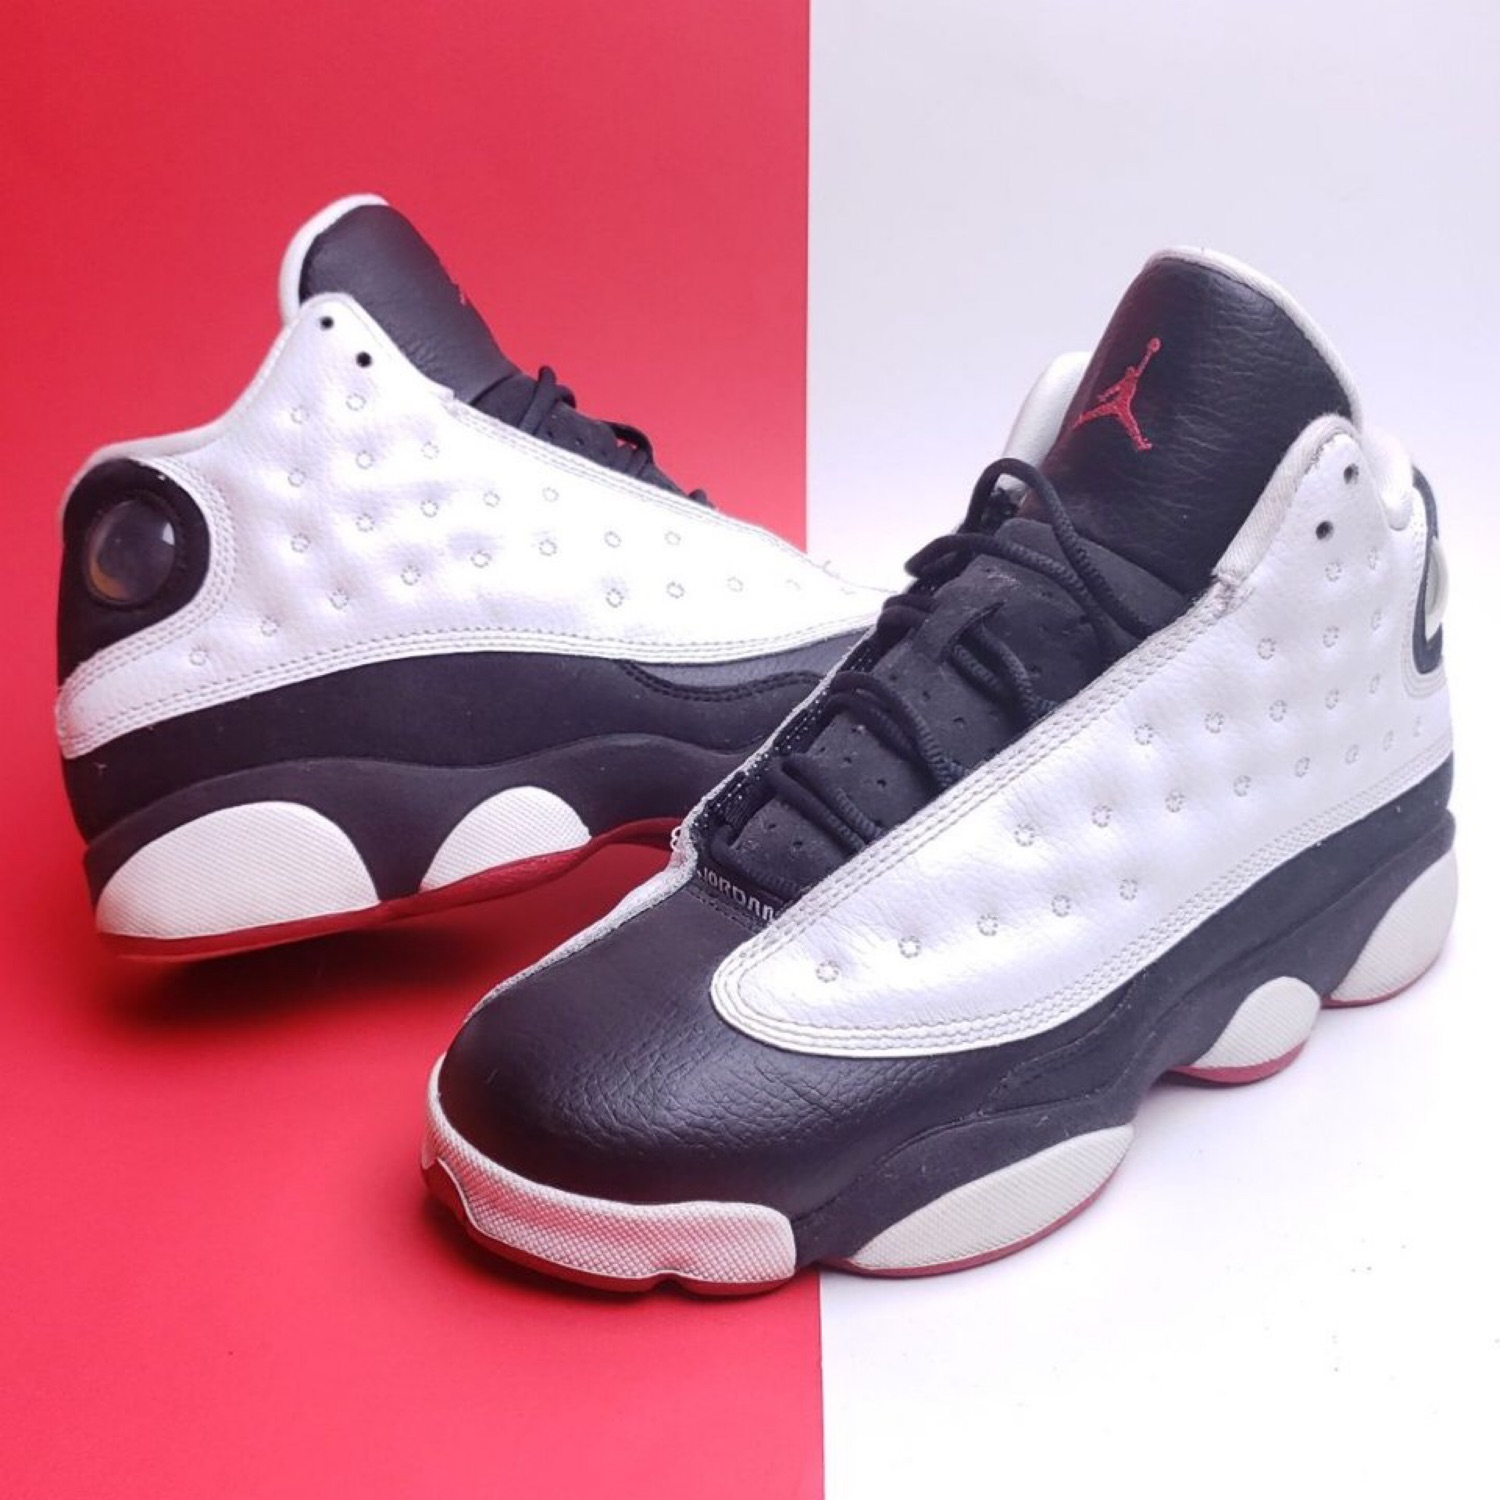 Air Jordan 13 Retro Gs 'He Got Game' (2012)